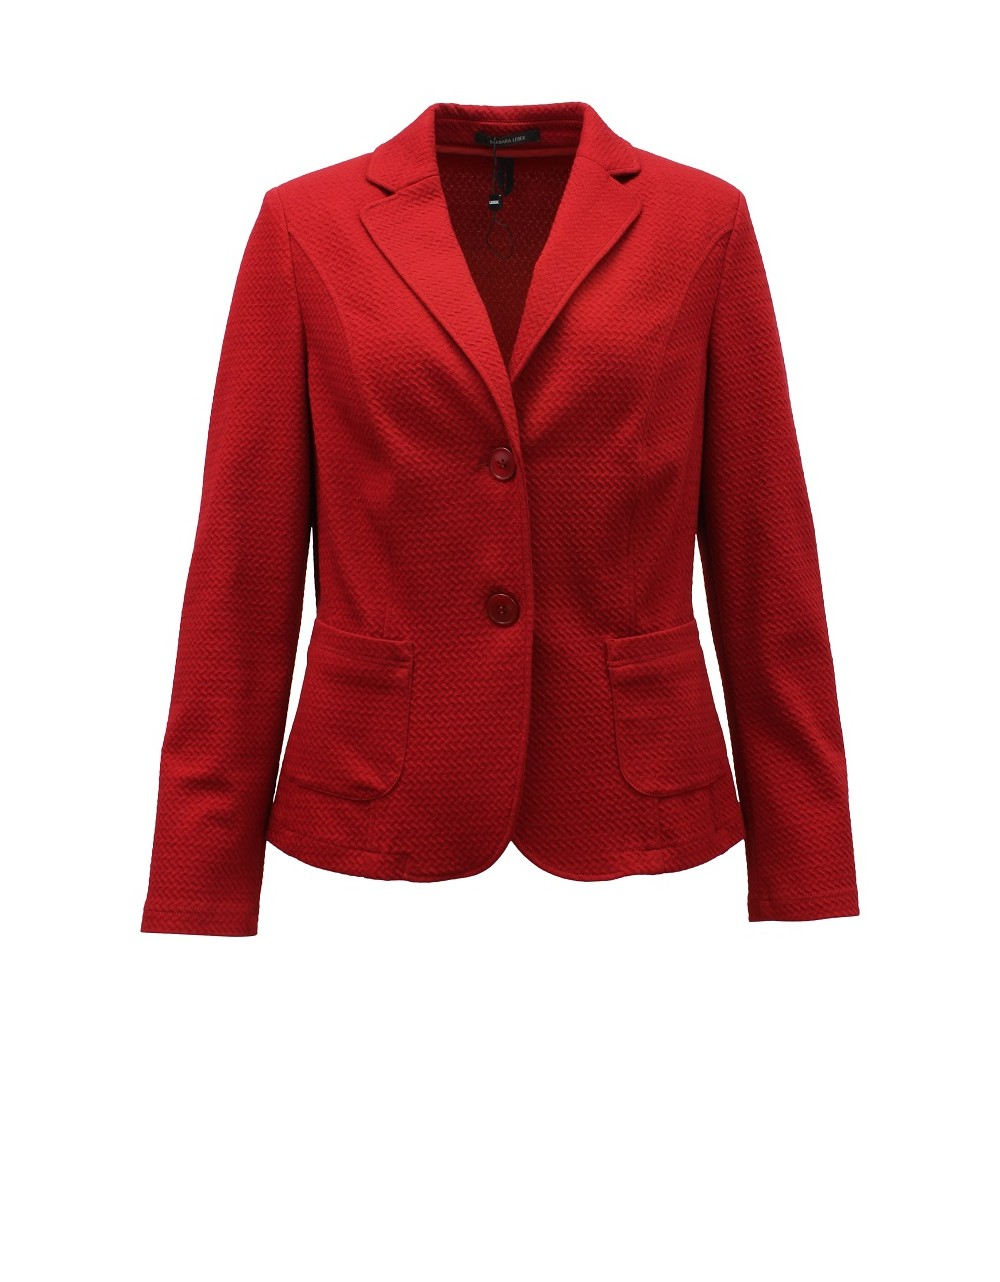 Barbara Lebek Cotton Rich Blazer New Season Irish Handcrafts -1